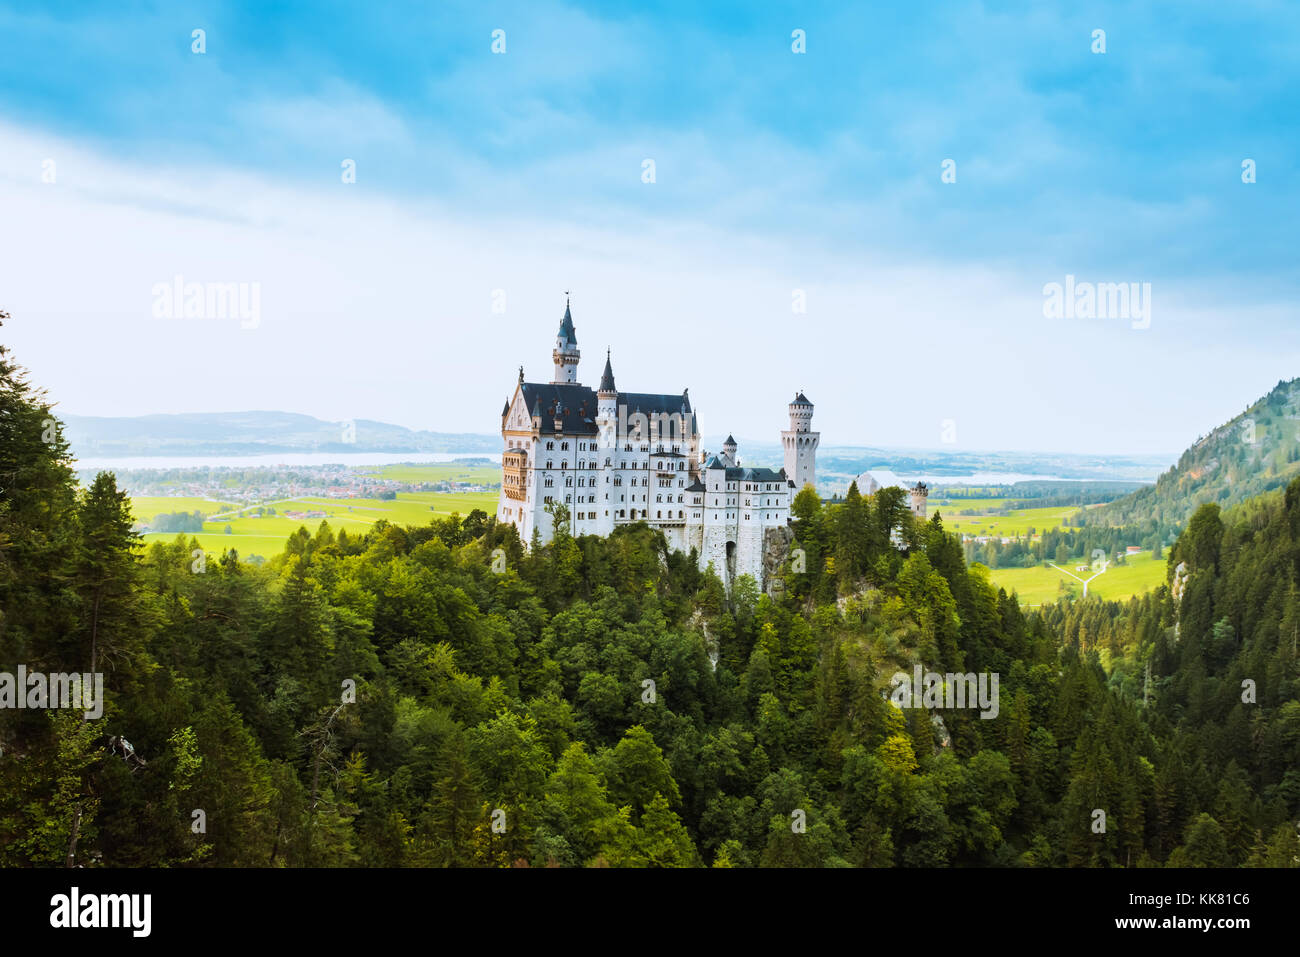 Beautiful aerial view of Neuschwanstein castle in summer season - Stock Image